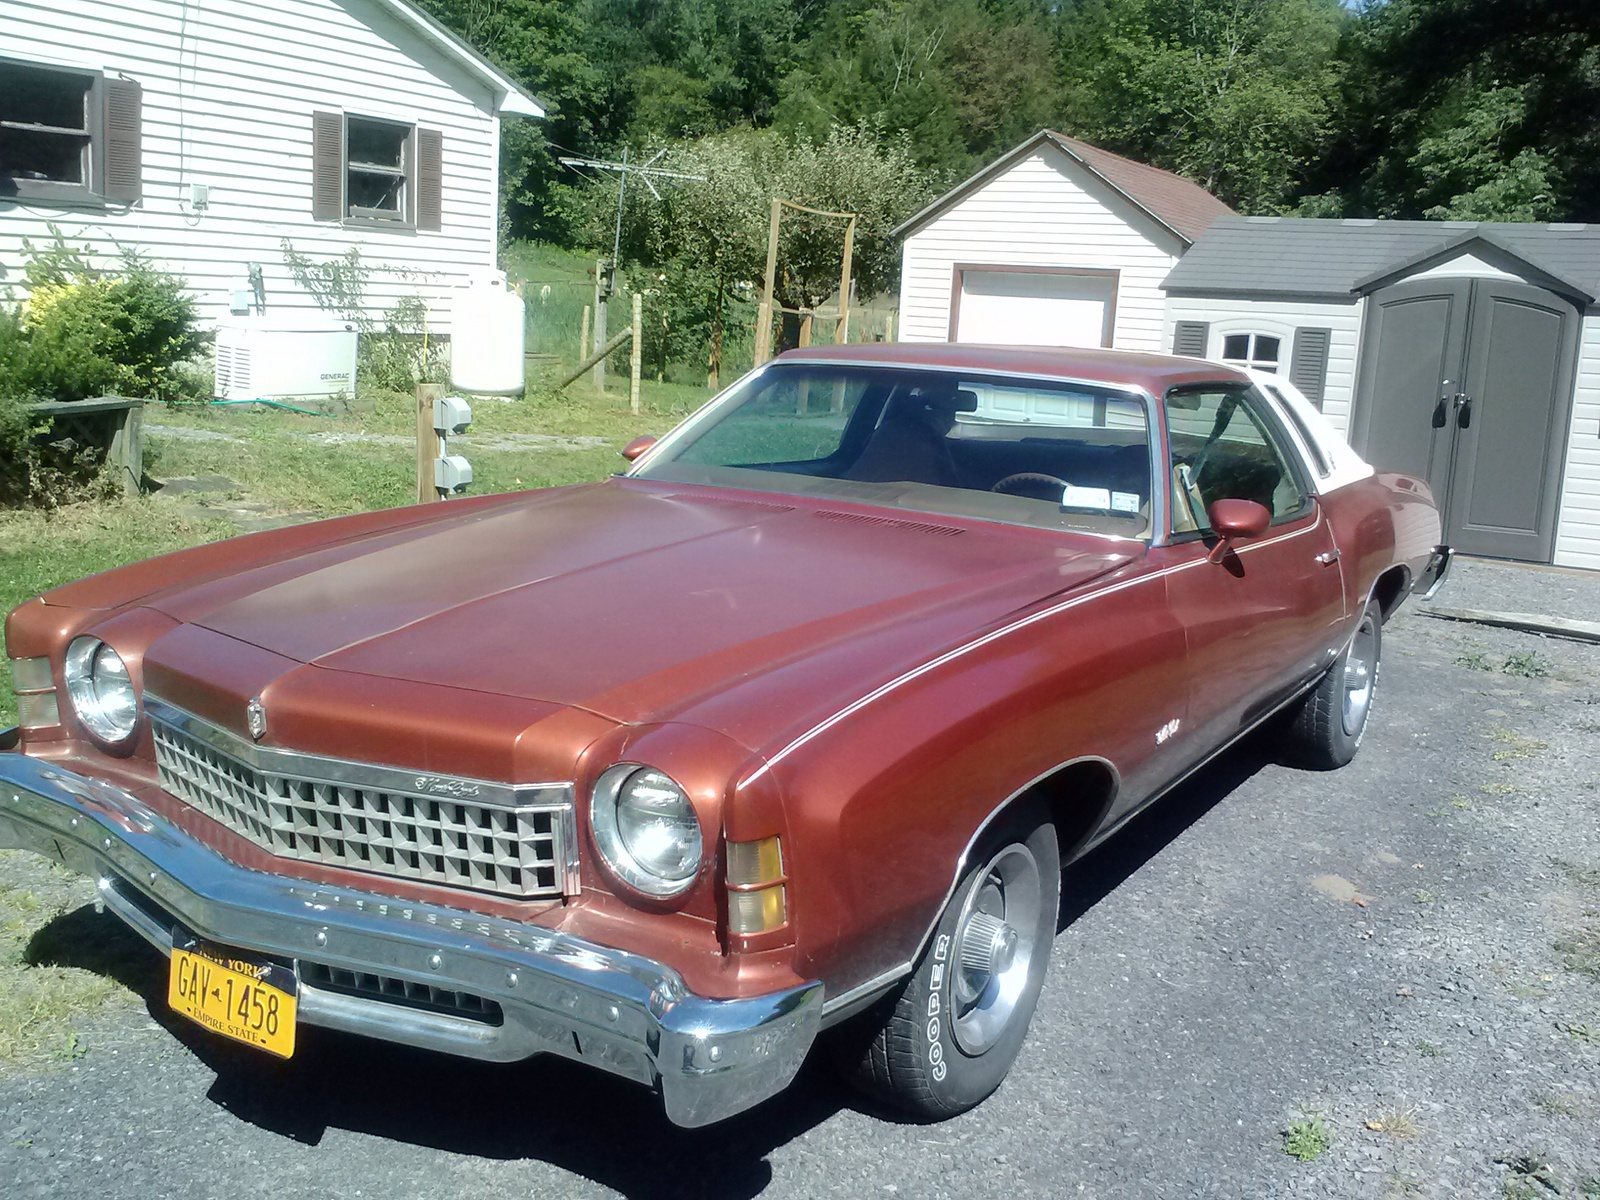 Used 2014 Chevy Impala >> 1974 Chevrolet Monte Carlo - Pictures - CarGurus